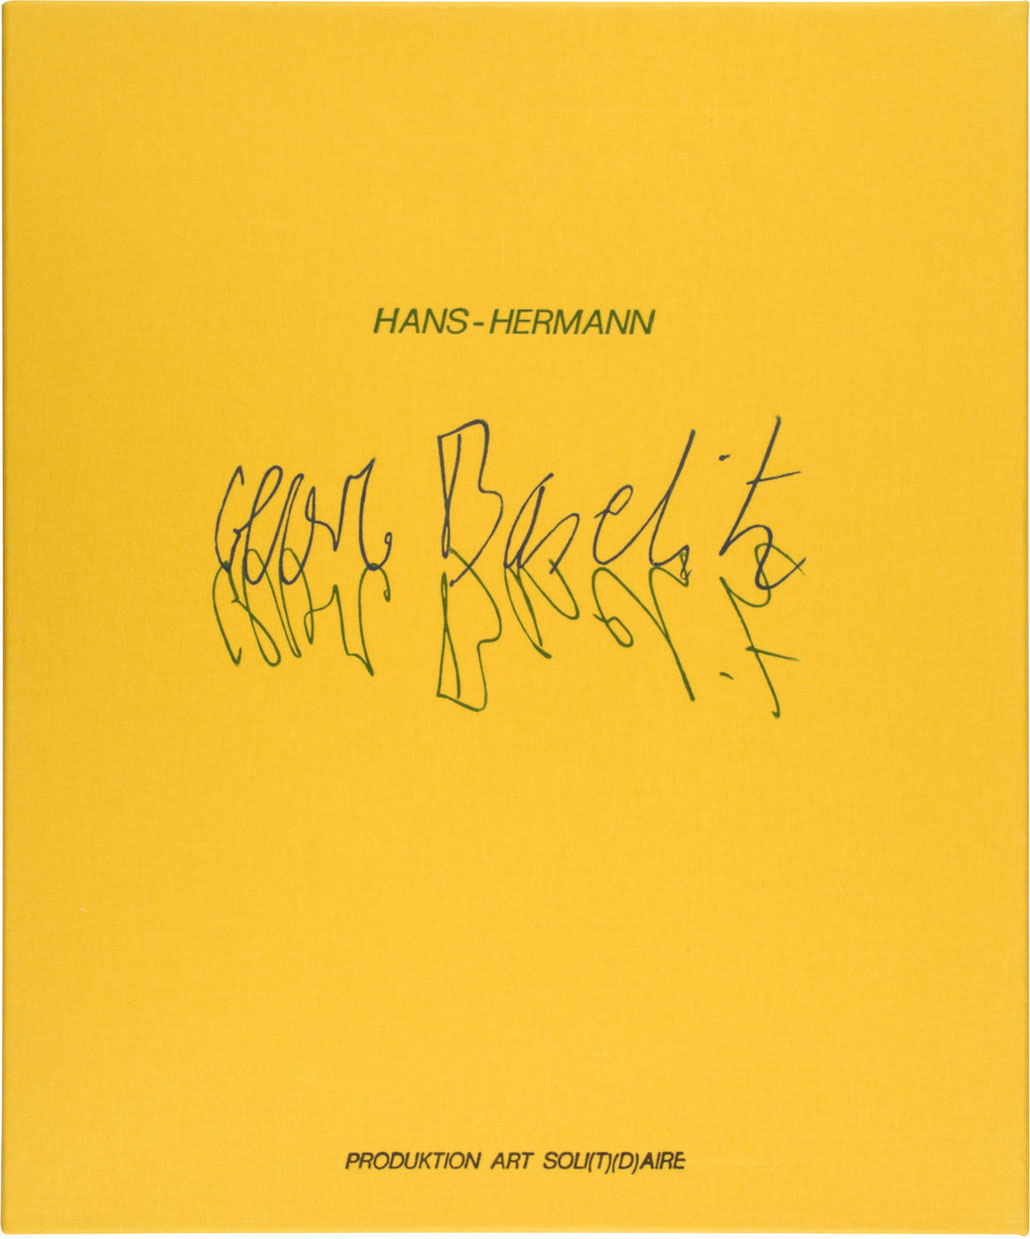 Georg Baselitz kaufen Edition Imperia Suite 2005 mit Hans Hermann Edition ART SOLI(T)(D)AIRE art prints by Baselitz